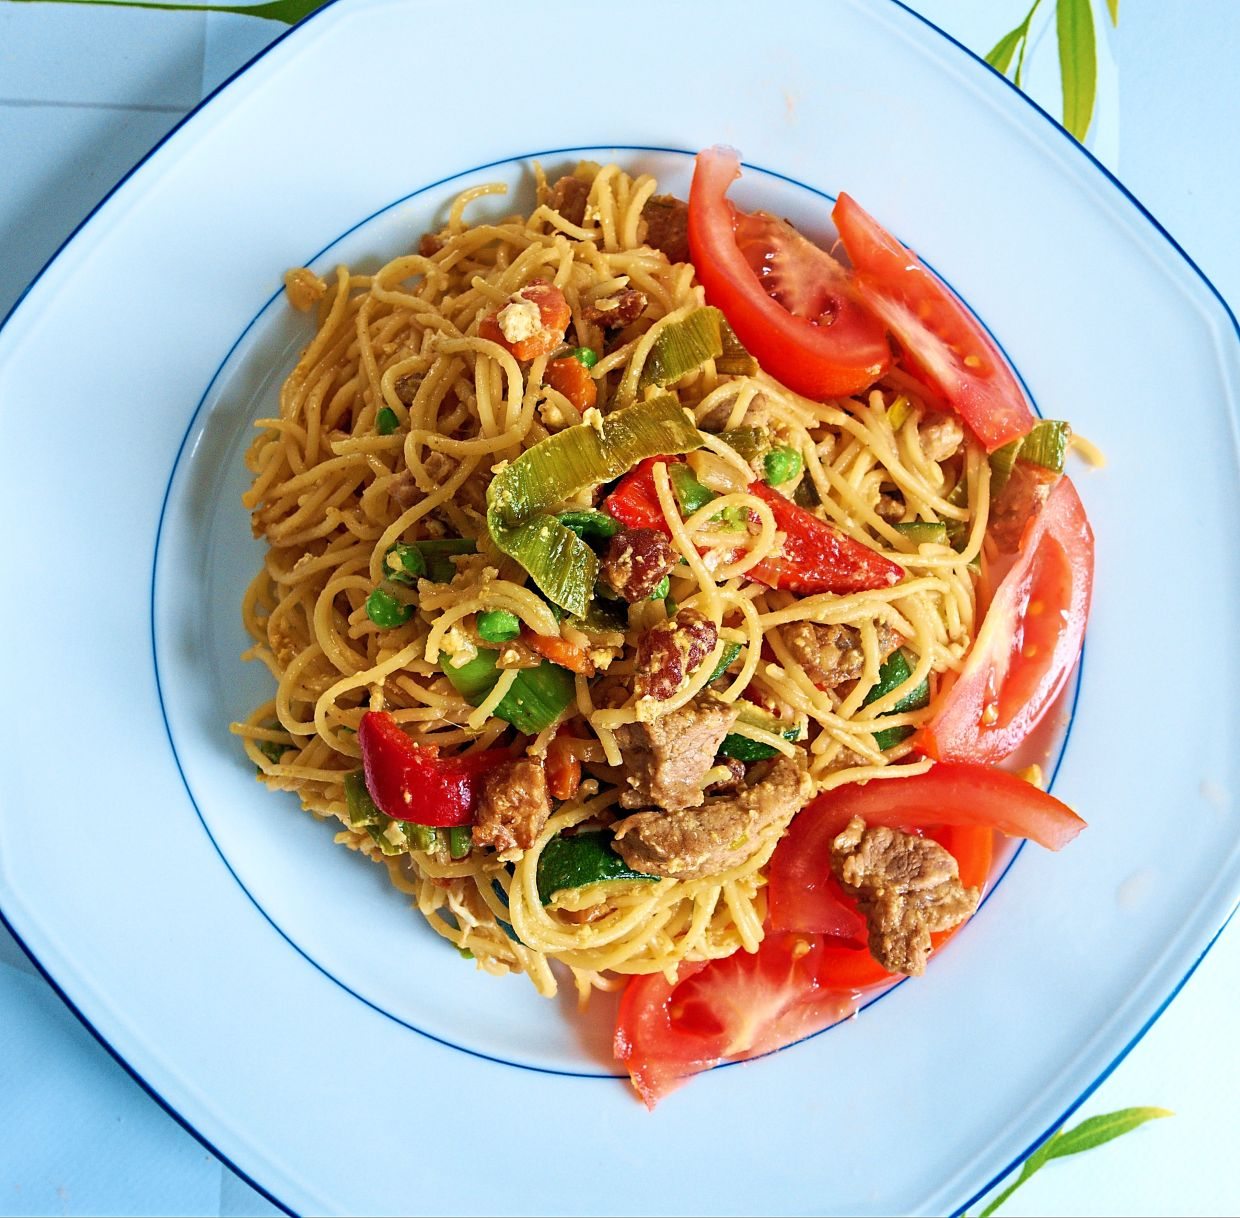 The columnist has used his lockdown time in France to create inventive meals, like this plate of Asian fusion noodles. — CHRIS CHAN